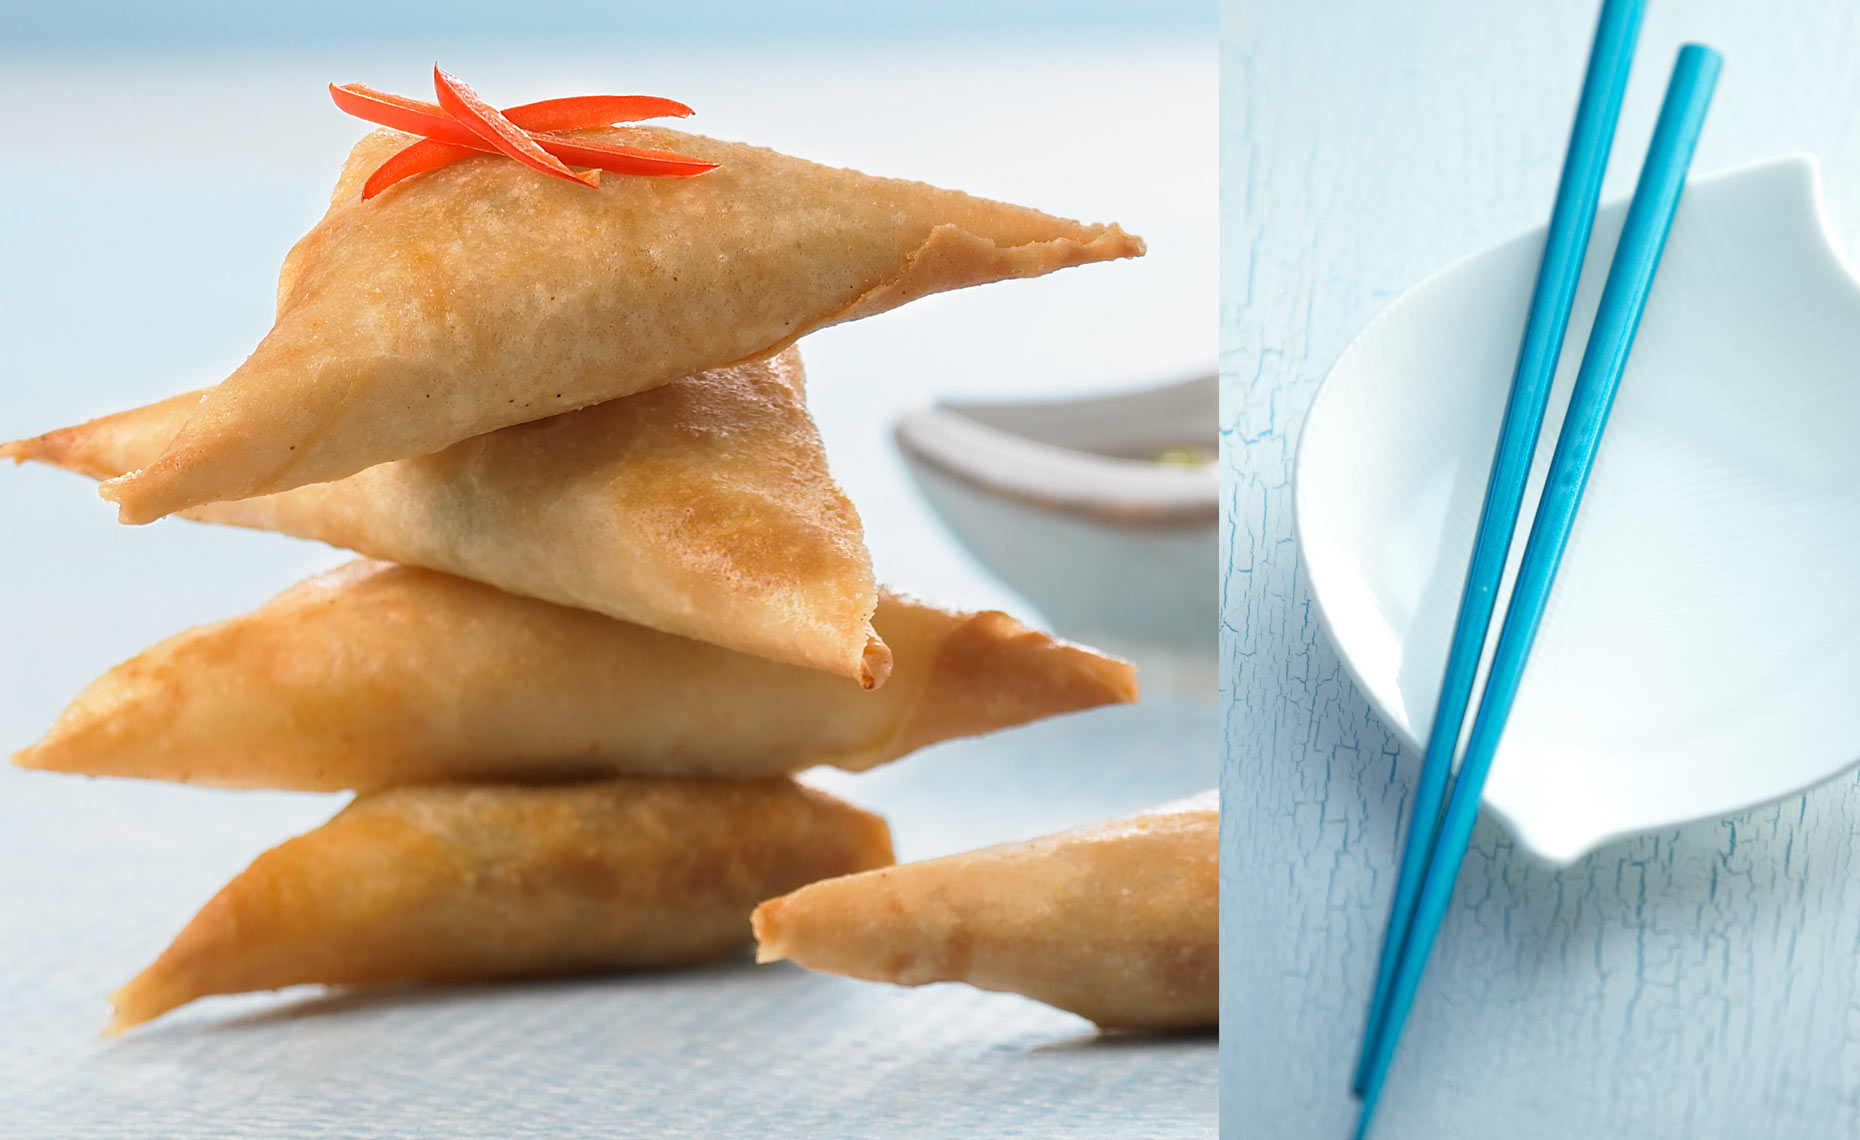 appetizers-fruits-vegetables-photographers-samosas-chopsticks-15